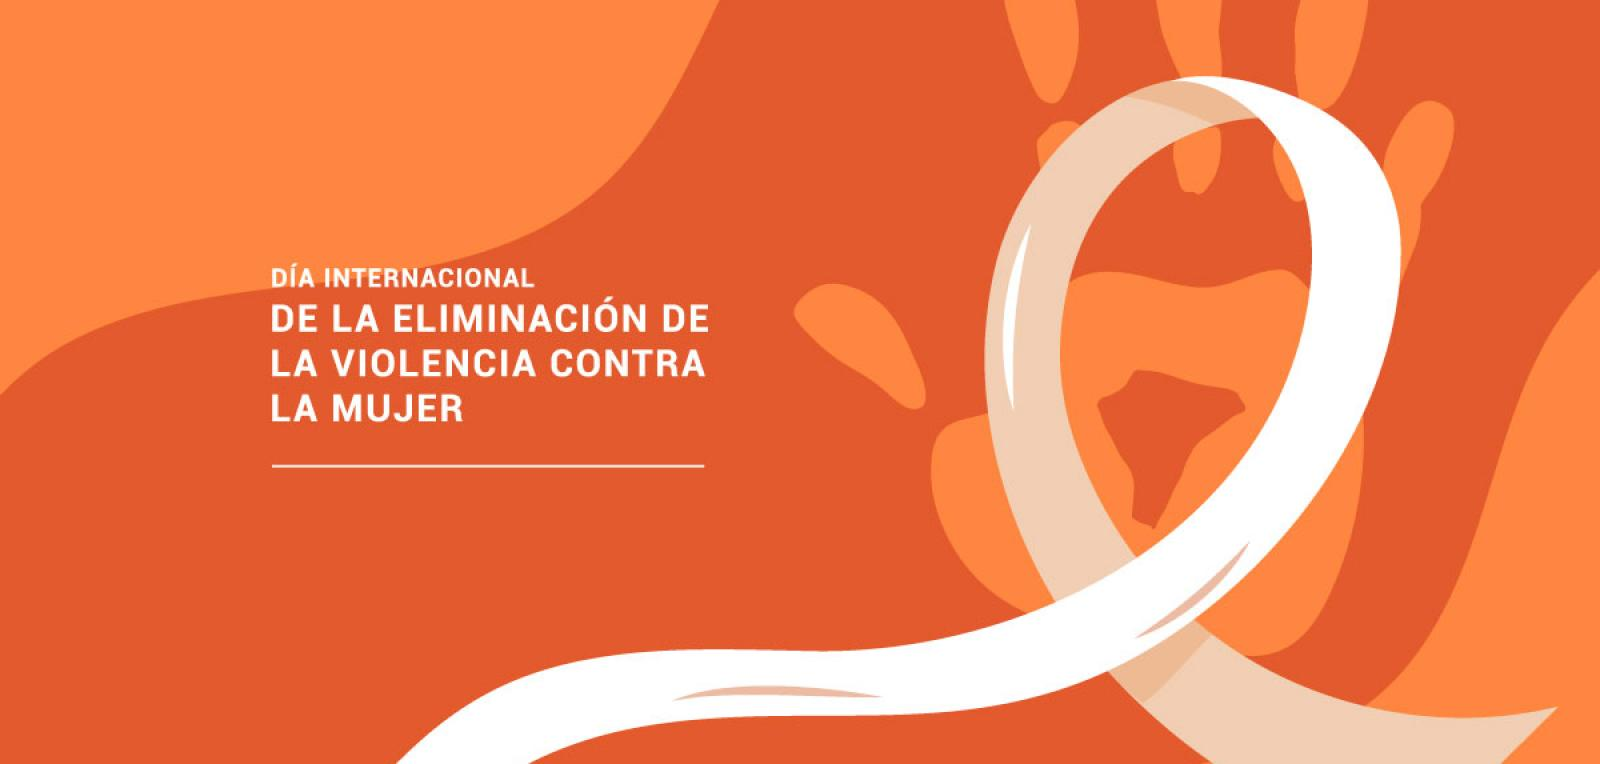 November 25: for the elimination of violence against women